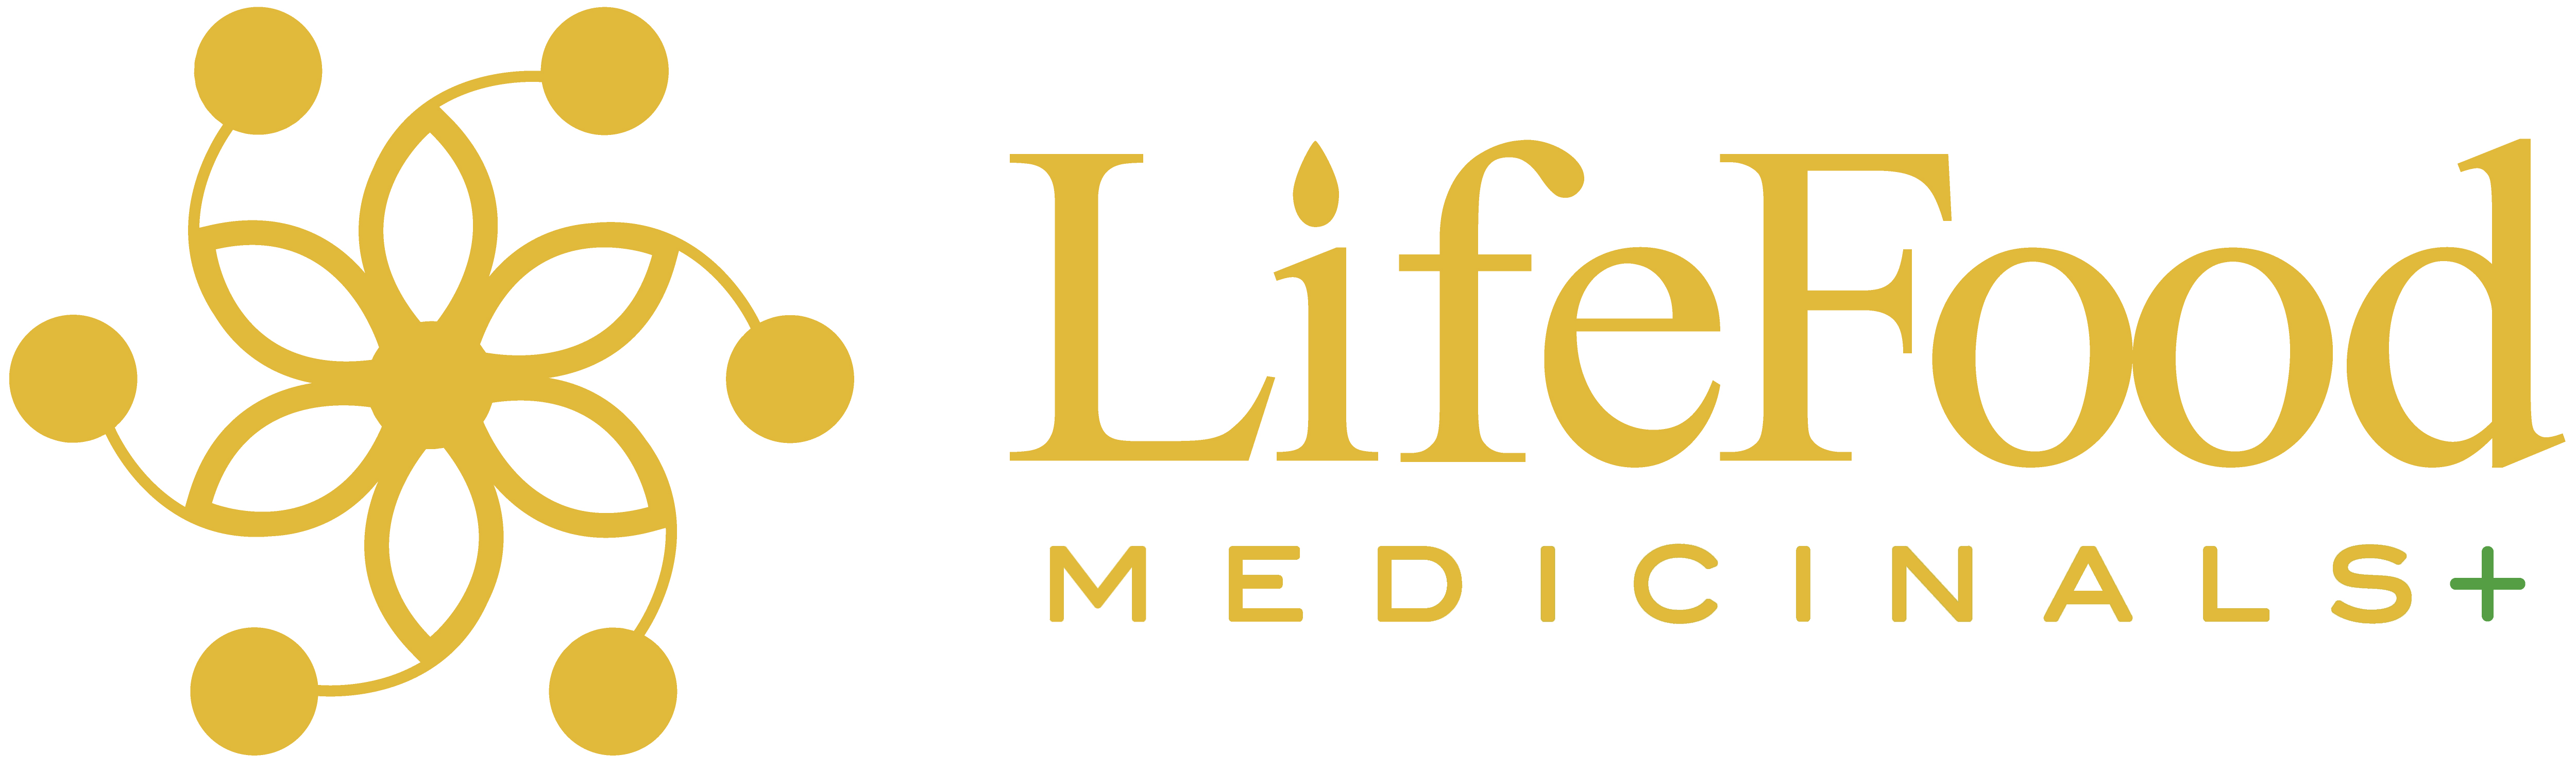 LifeFood Medicinals